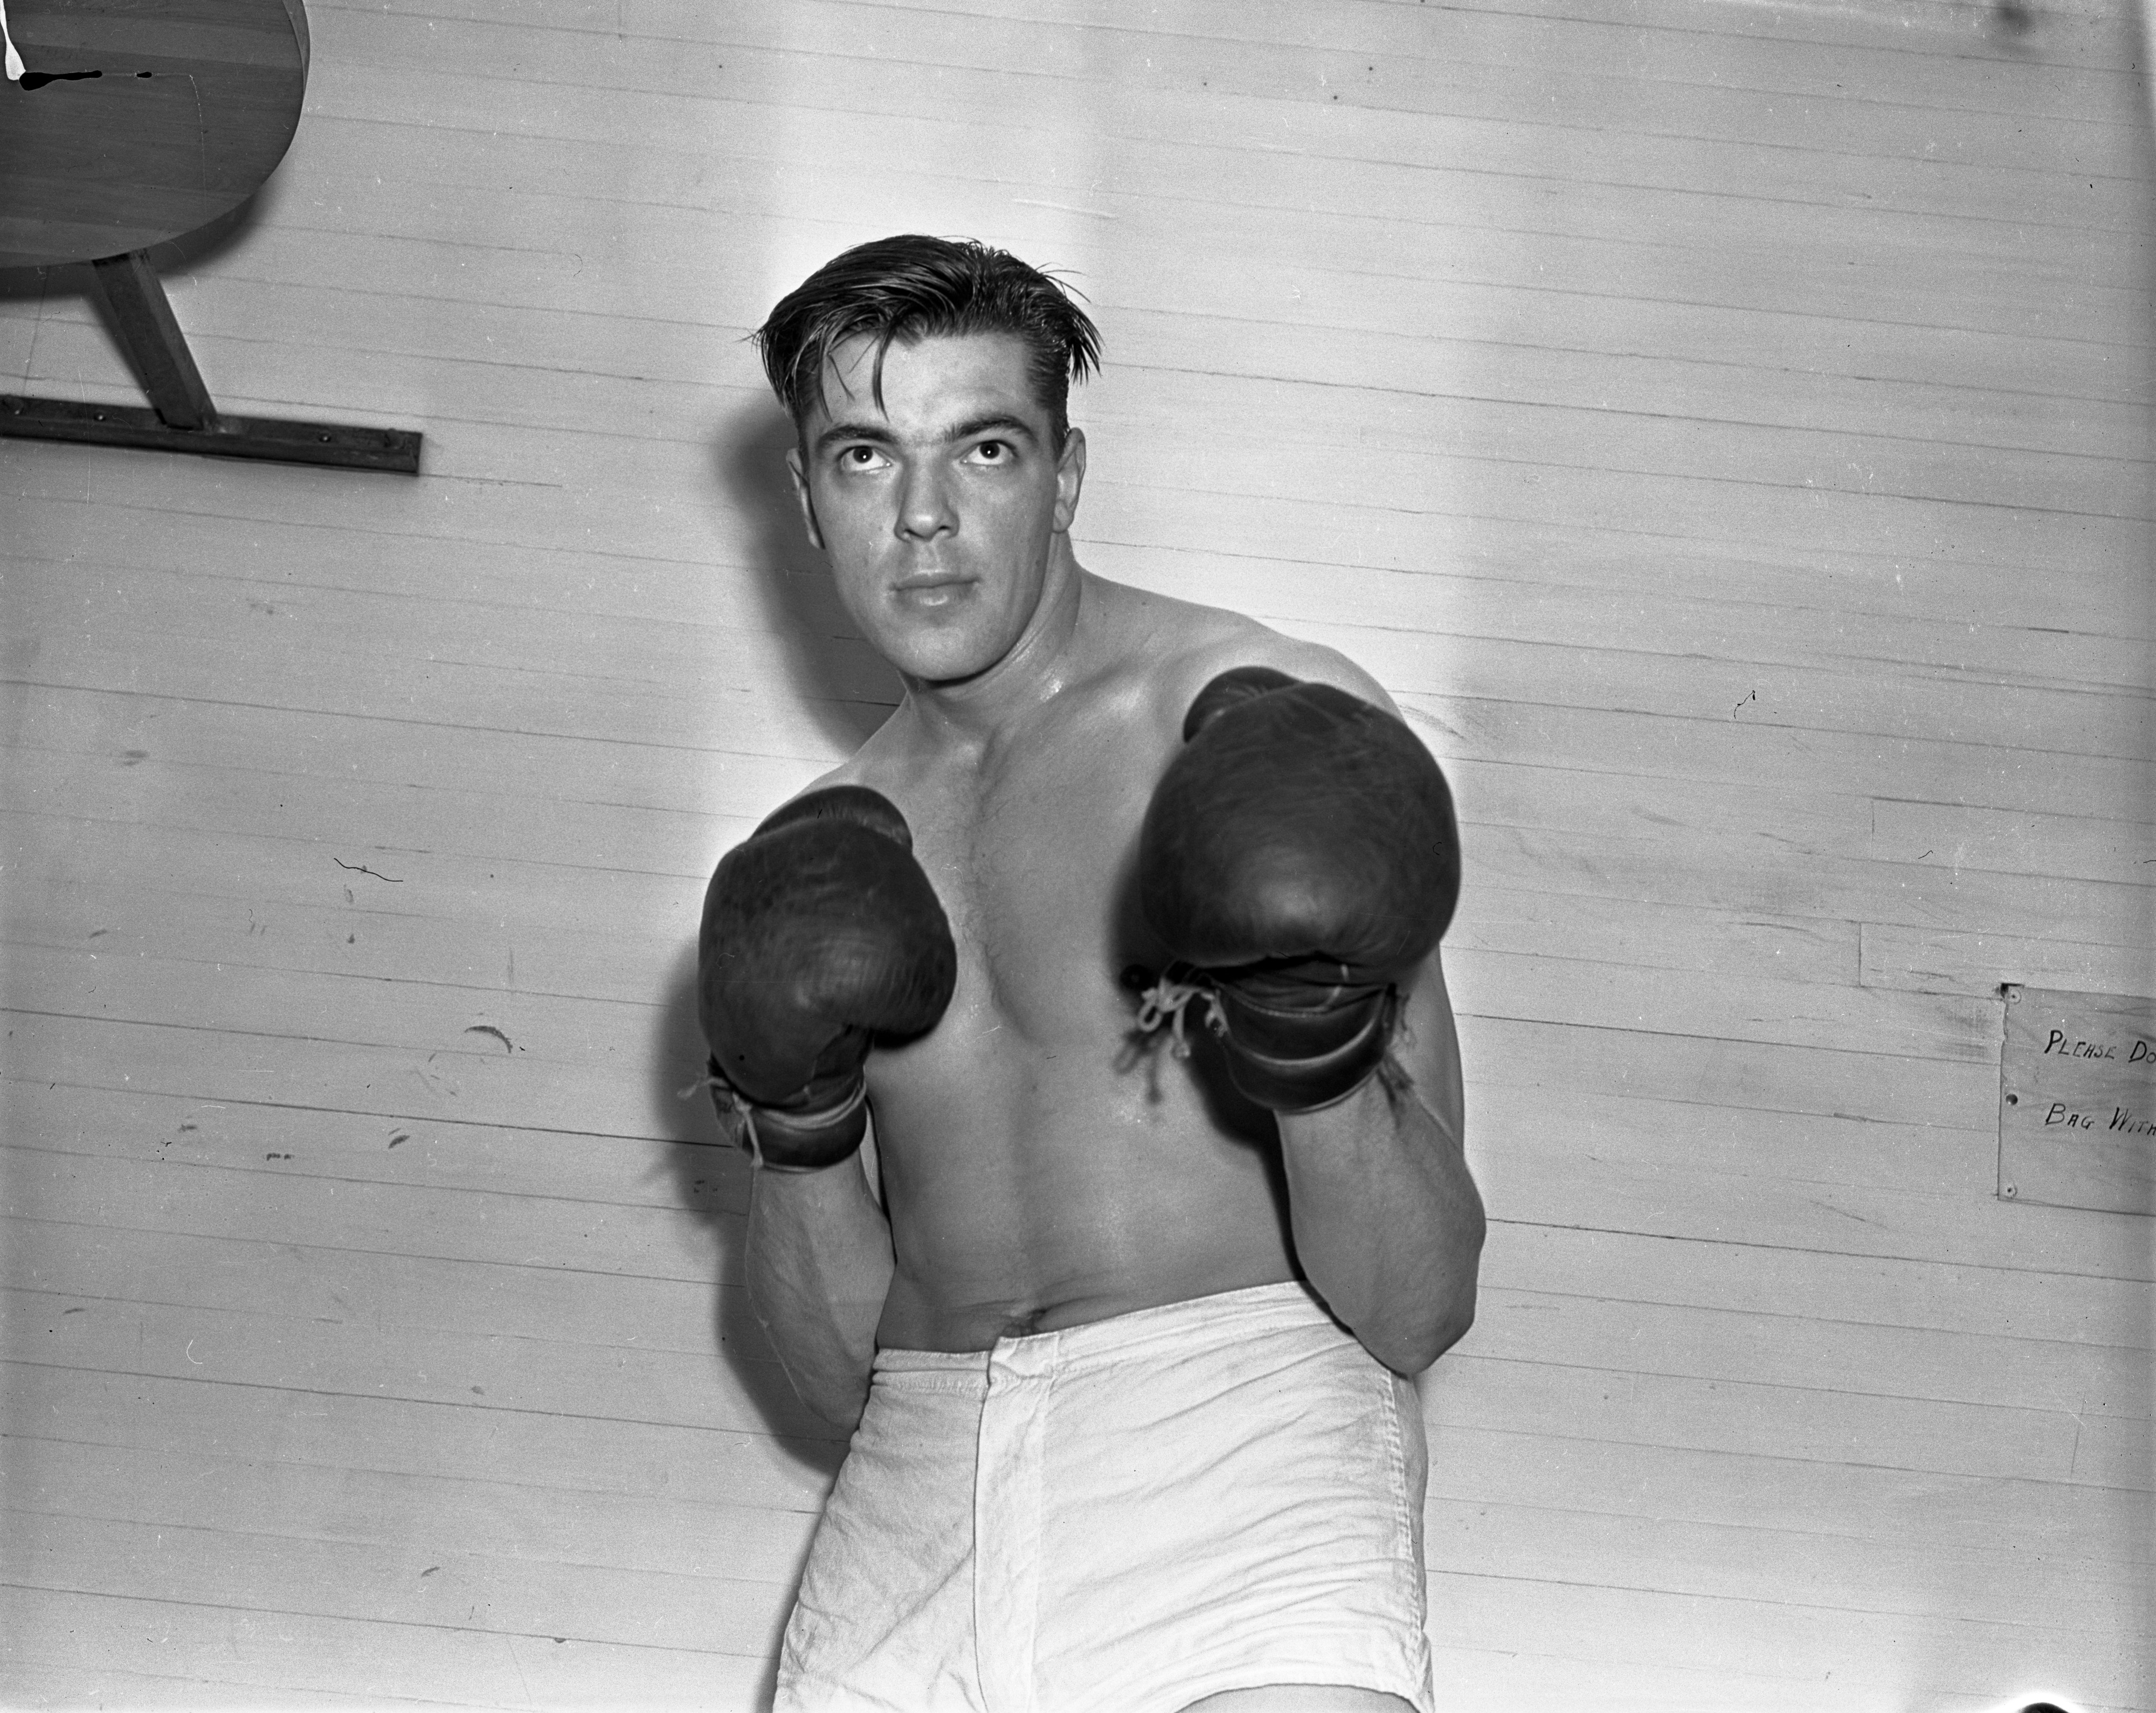 Boxer Don Siegel, 1939 image